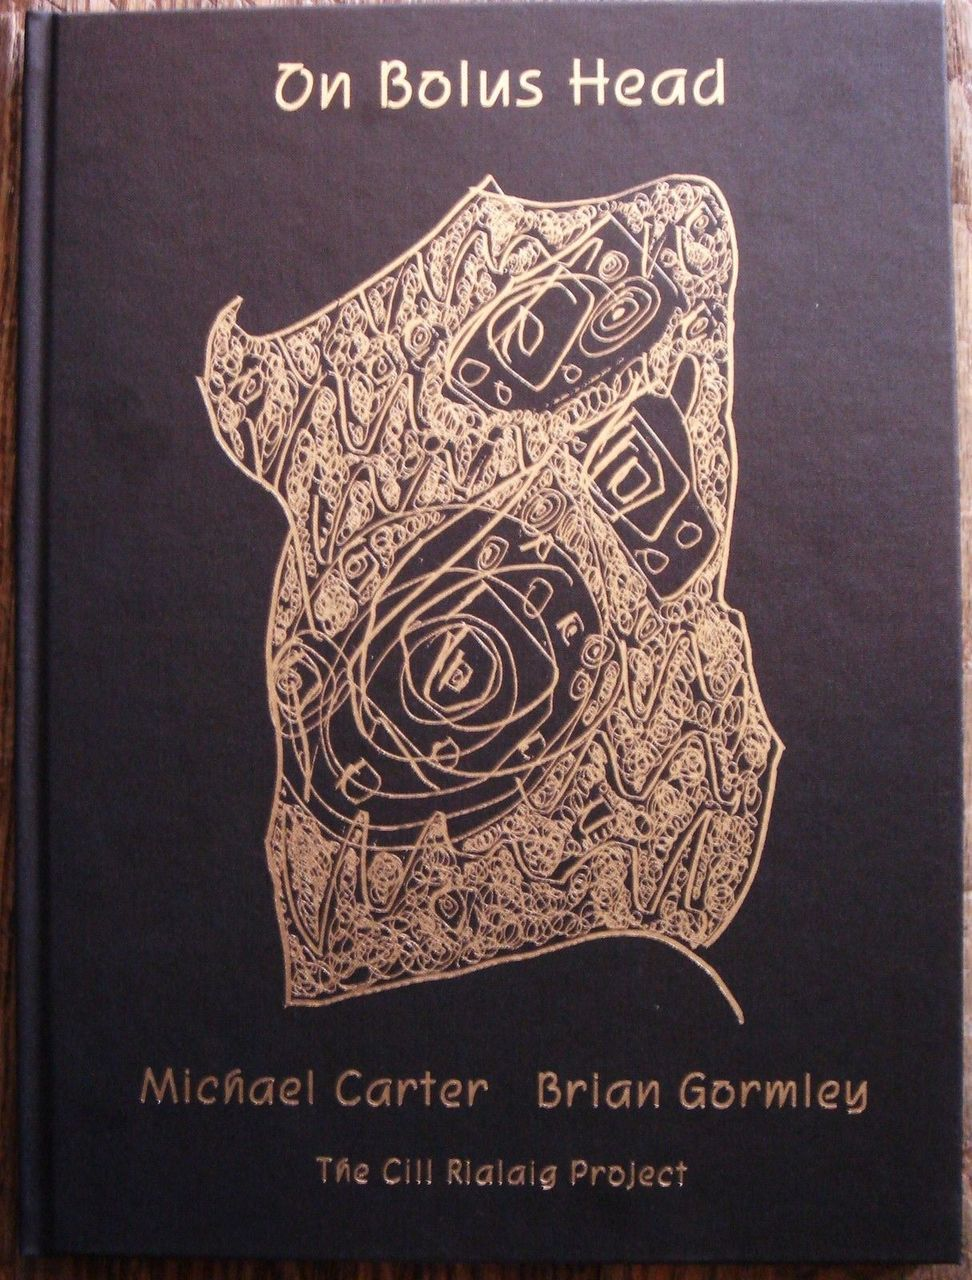 ON BOLUS HEAD Poetry & Etchings Michael Carter, Brian Gormley; Ireland table bk